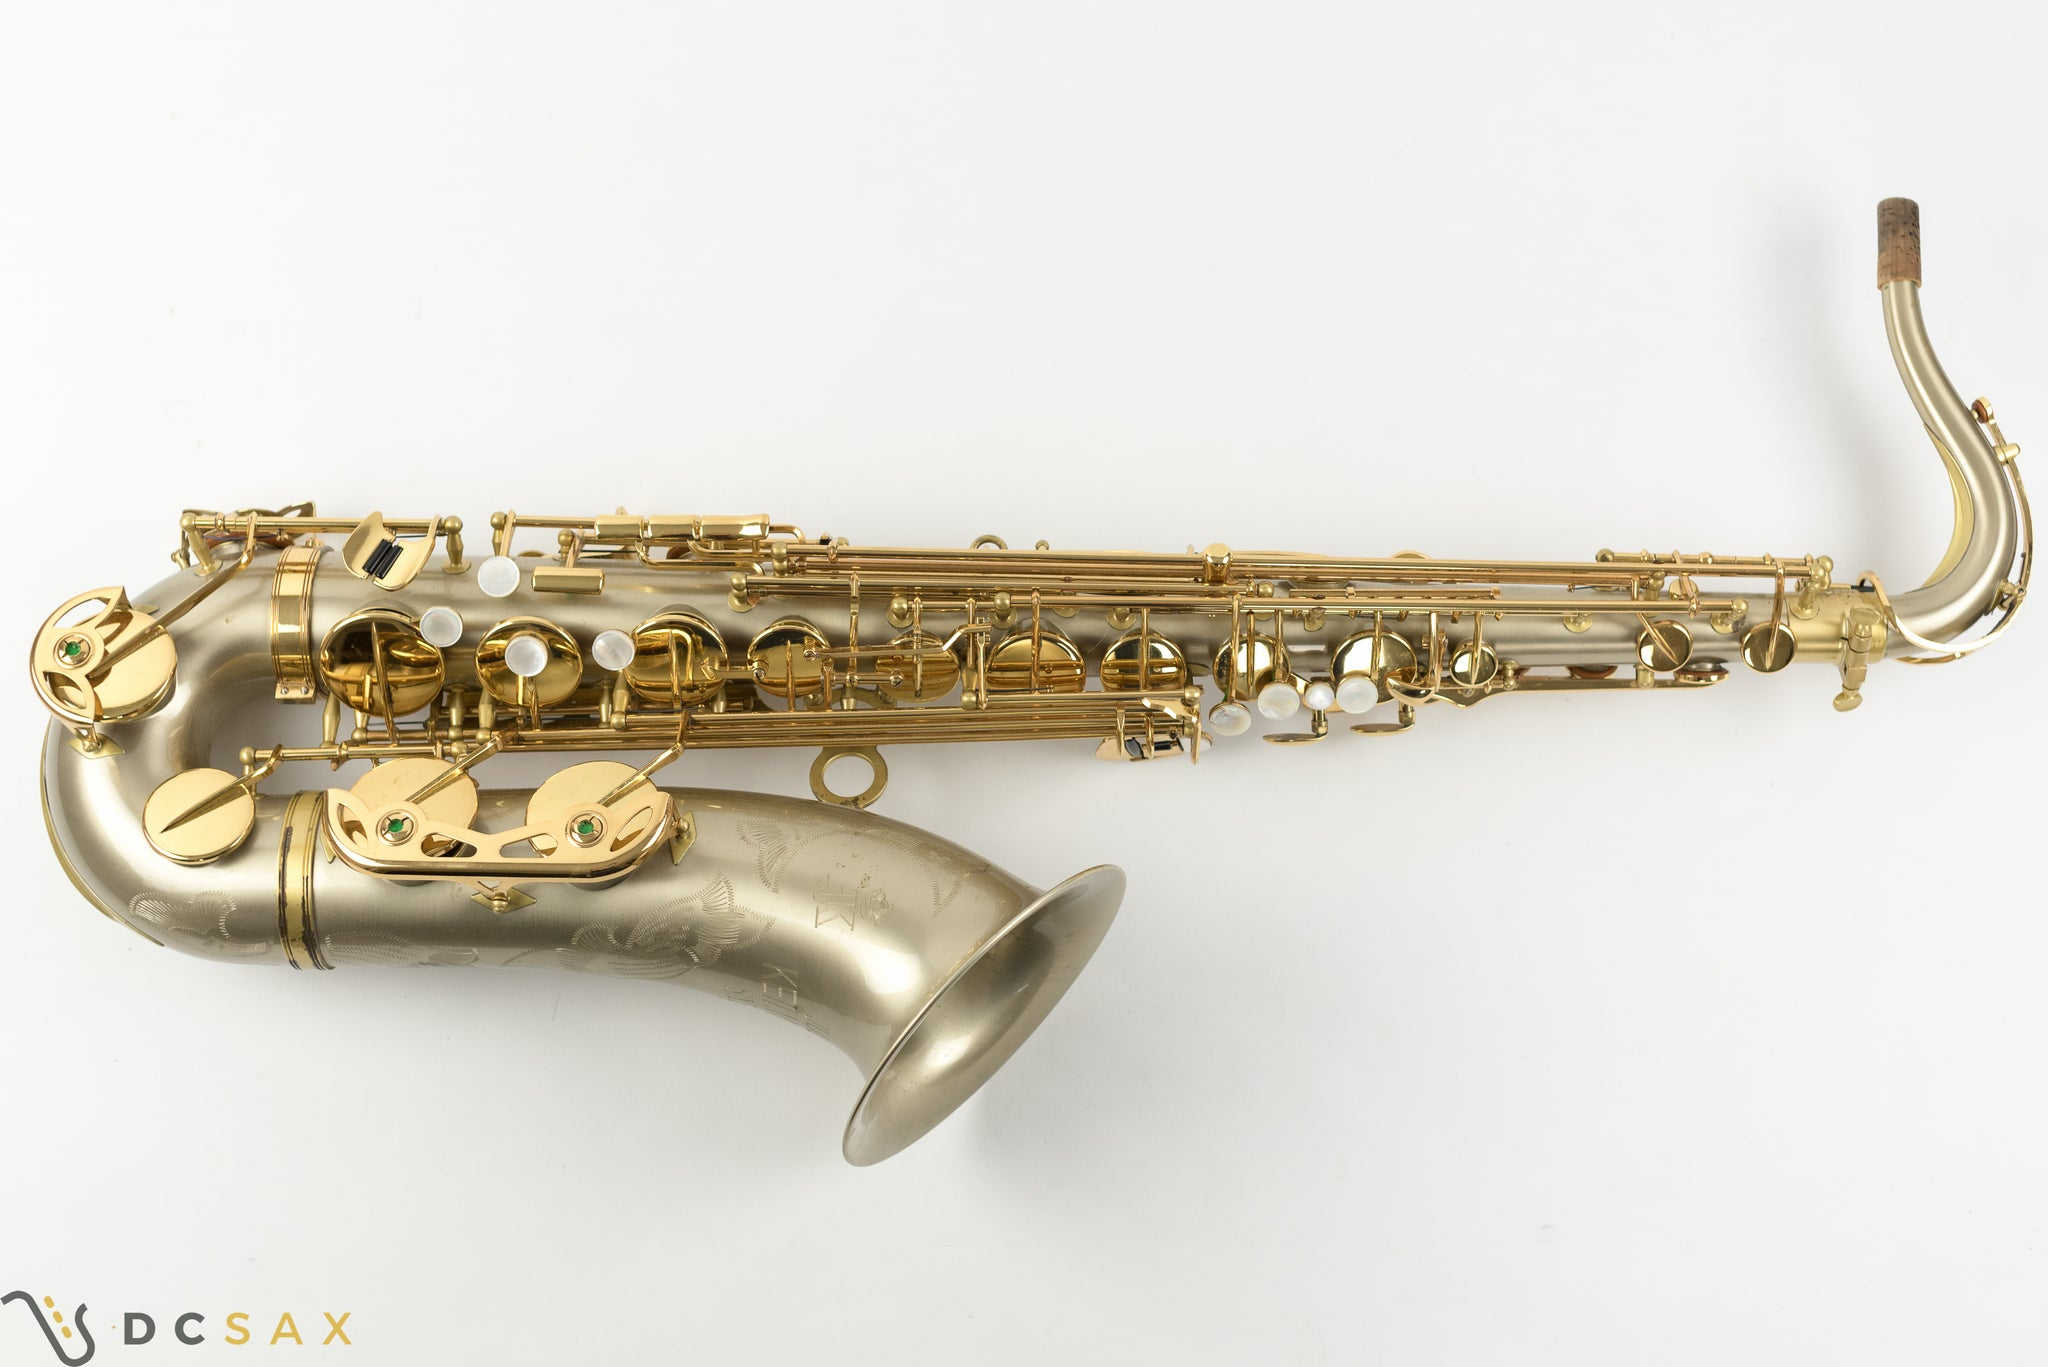 Keilwerth SX90R Tenor Saxophone, Rare Brushed Nickel-Silver Finish